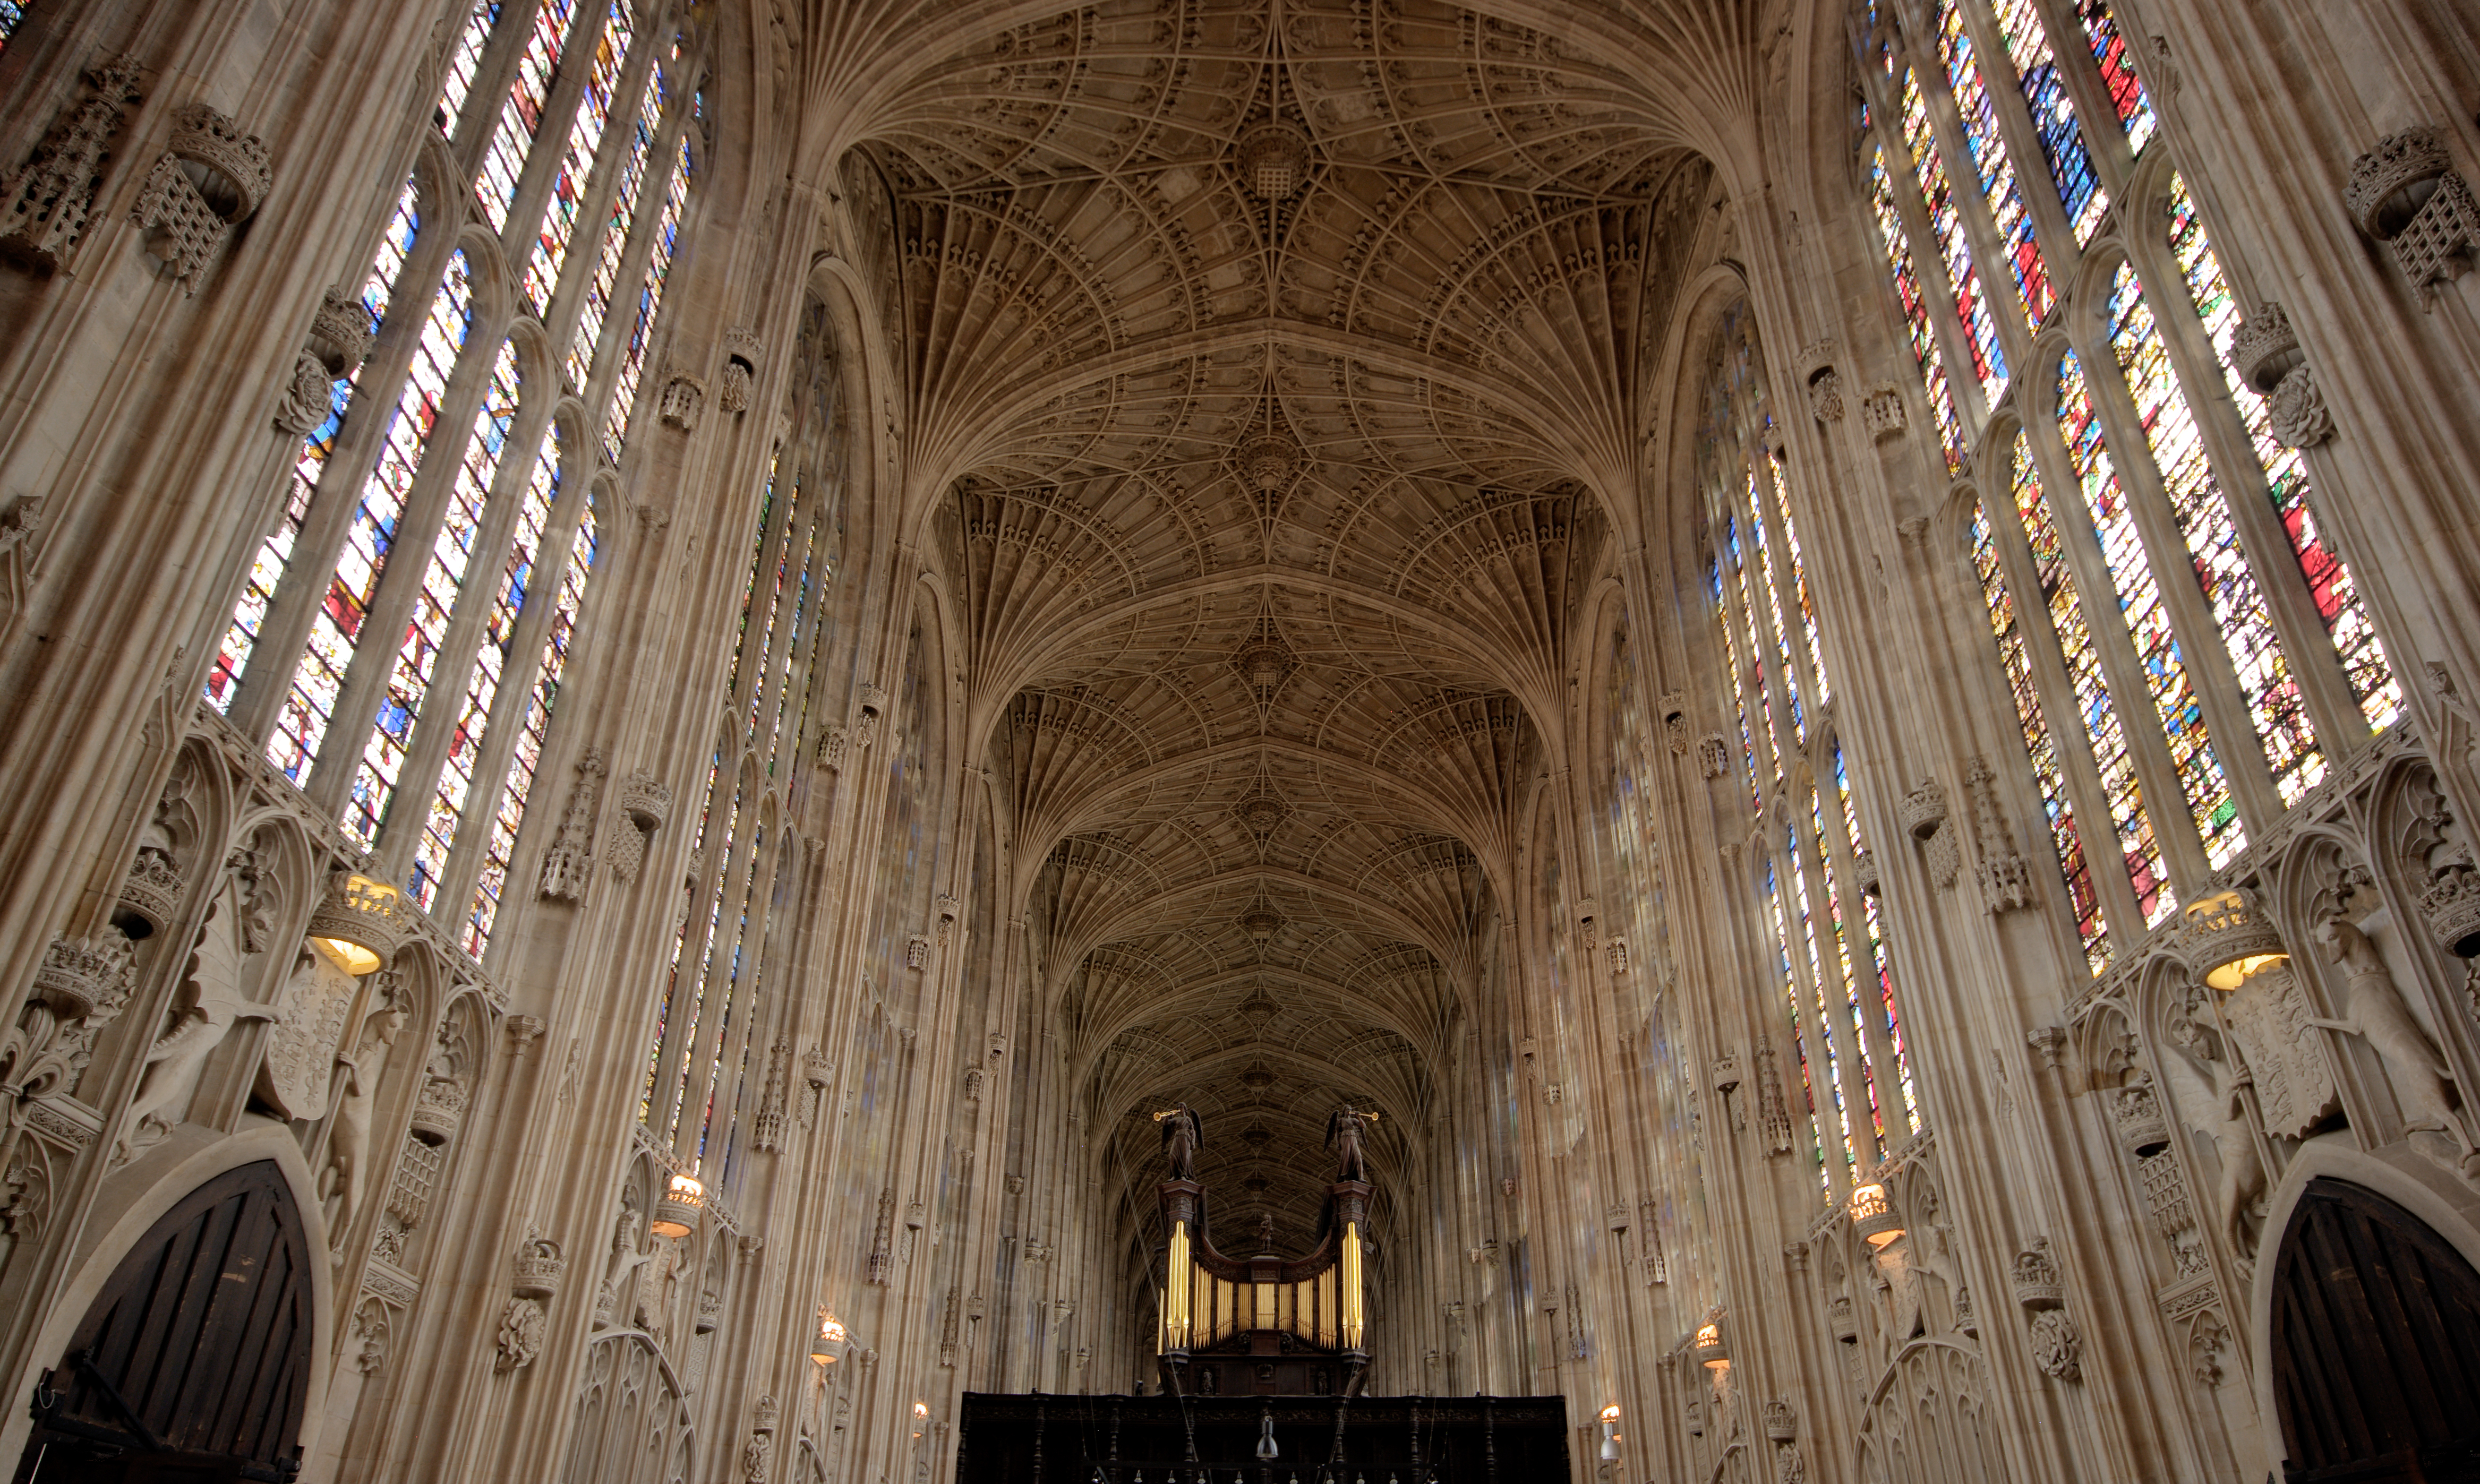 the roof of medieval gothic structured king's college chapel in cambridge unviersity